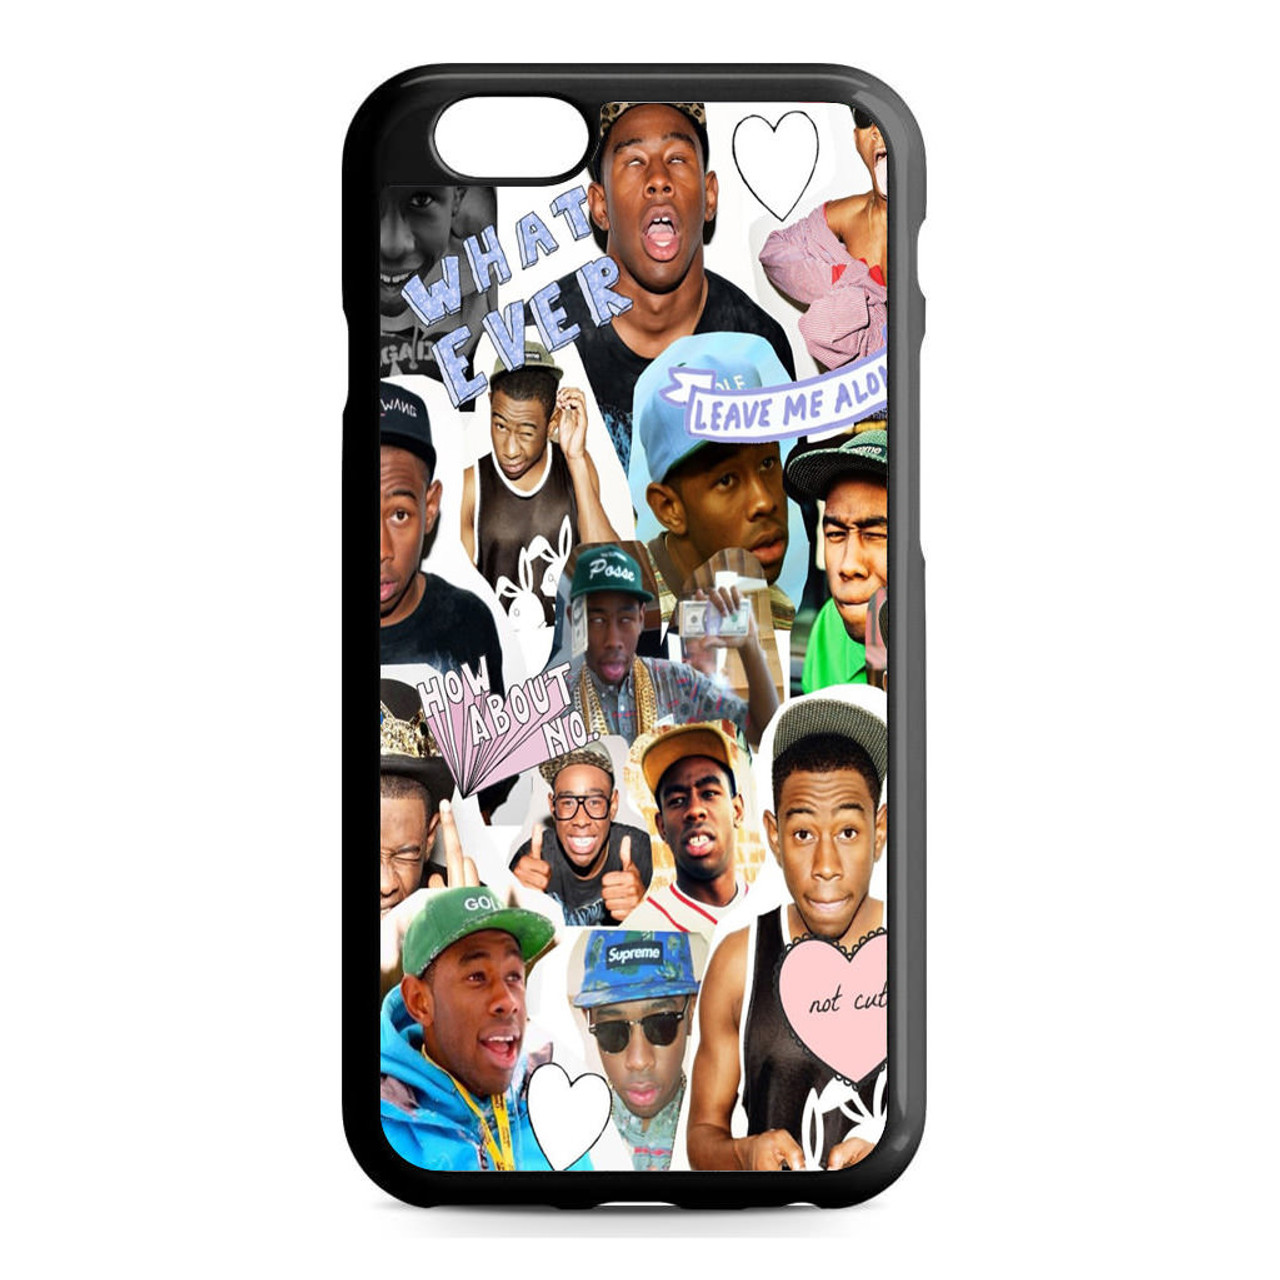 ce28925eea59 Tyler The Creator Collage iPhone 6 6S Case - Jocases